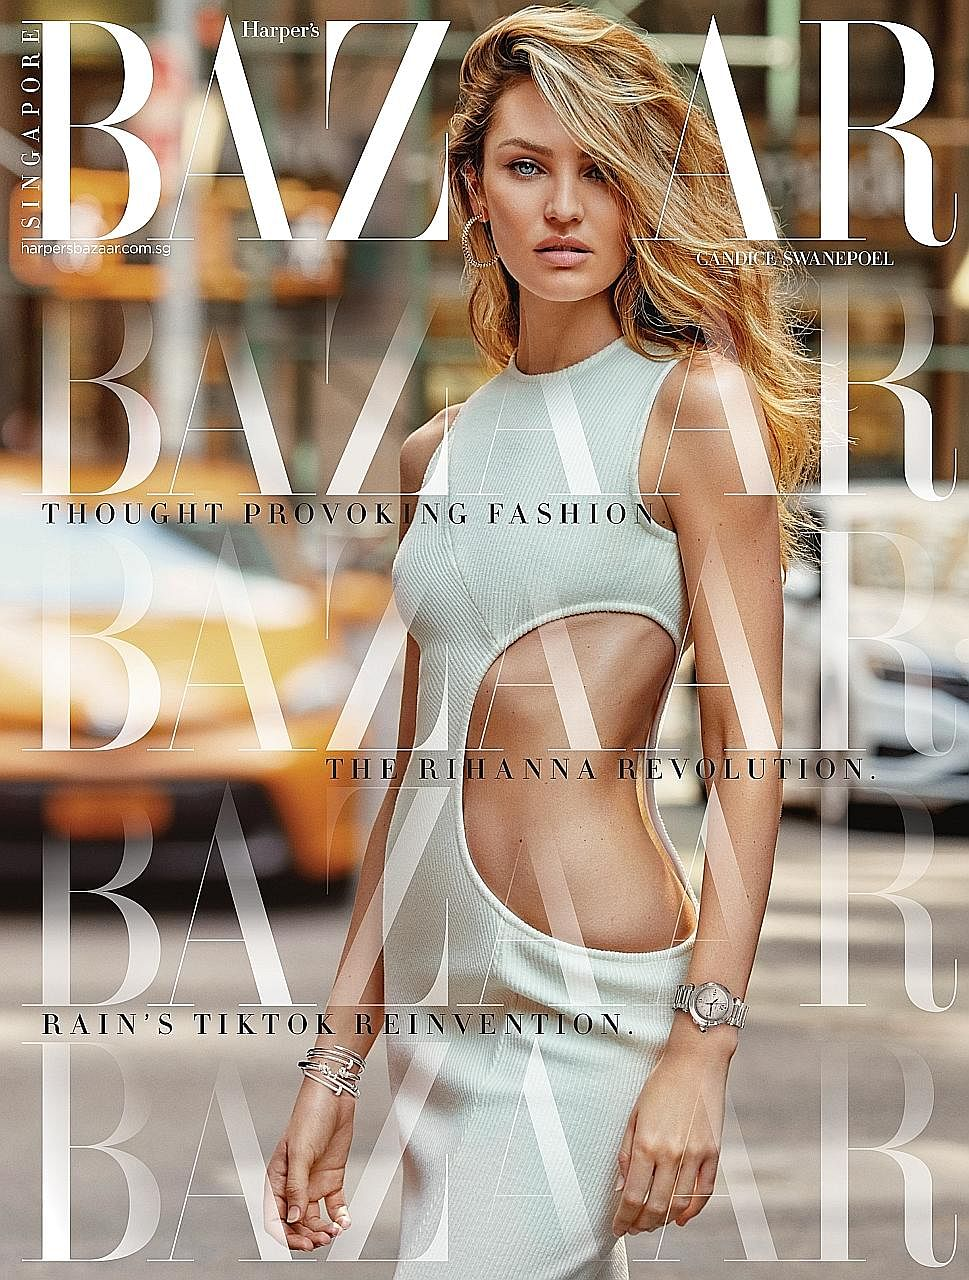 Harper's Bazaar's September 2020 issue featuring South African model Candice Swanepoel. The magazine recently underwent a revamp of its print and digital mediums. Harper's Bazaar Singapore editor-in-chief Kenneth Goh (left), and with influencers Iren